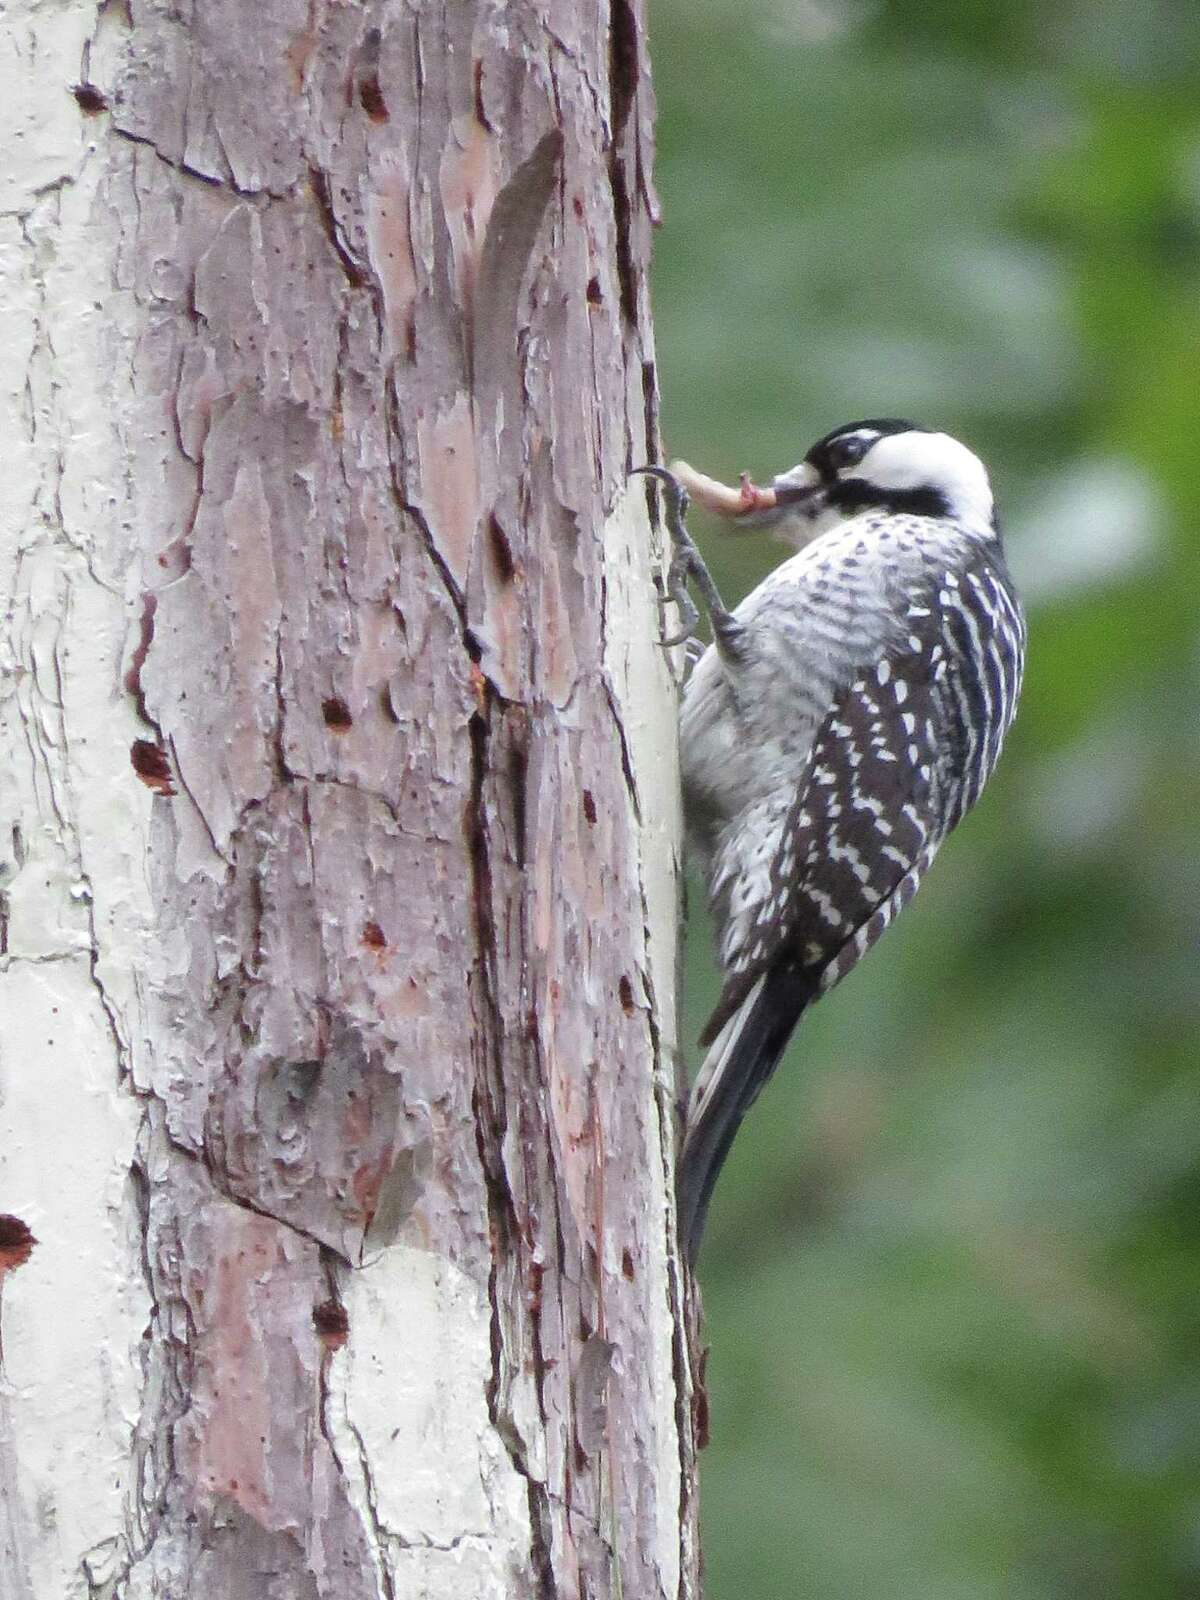 The Texas A& Forest Service announced it has received two pairs of unrelated Red-Cockaded Woodpeckers, which can now call Jones State Forest in Conroe home.